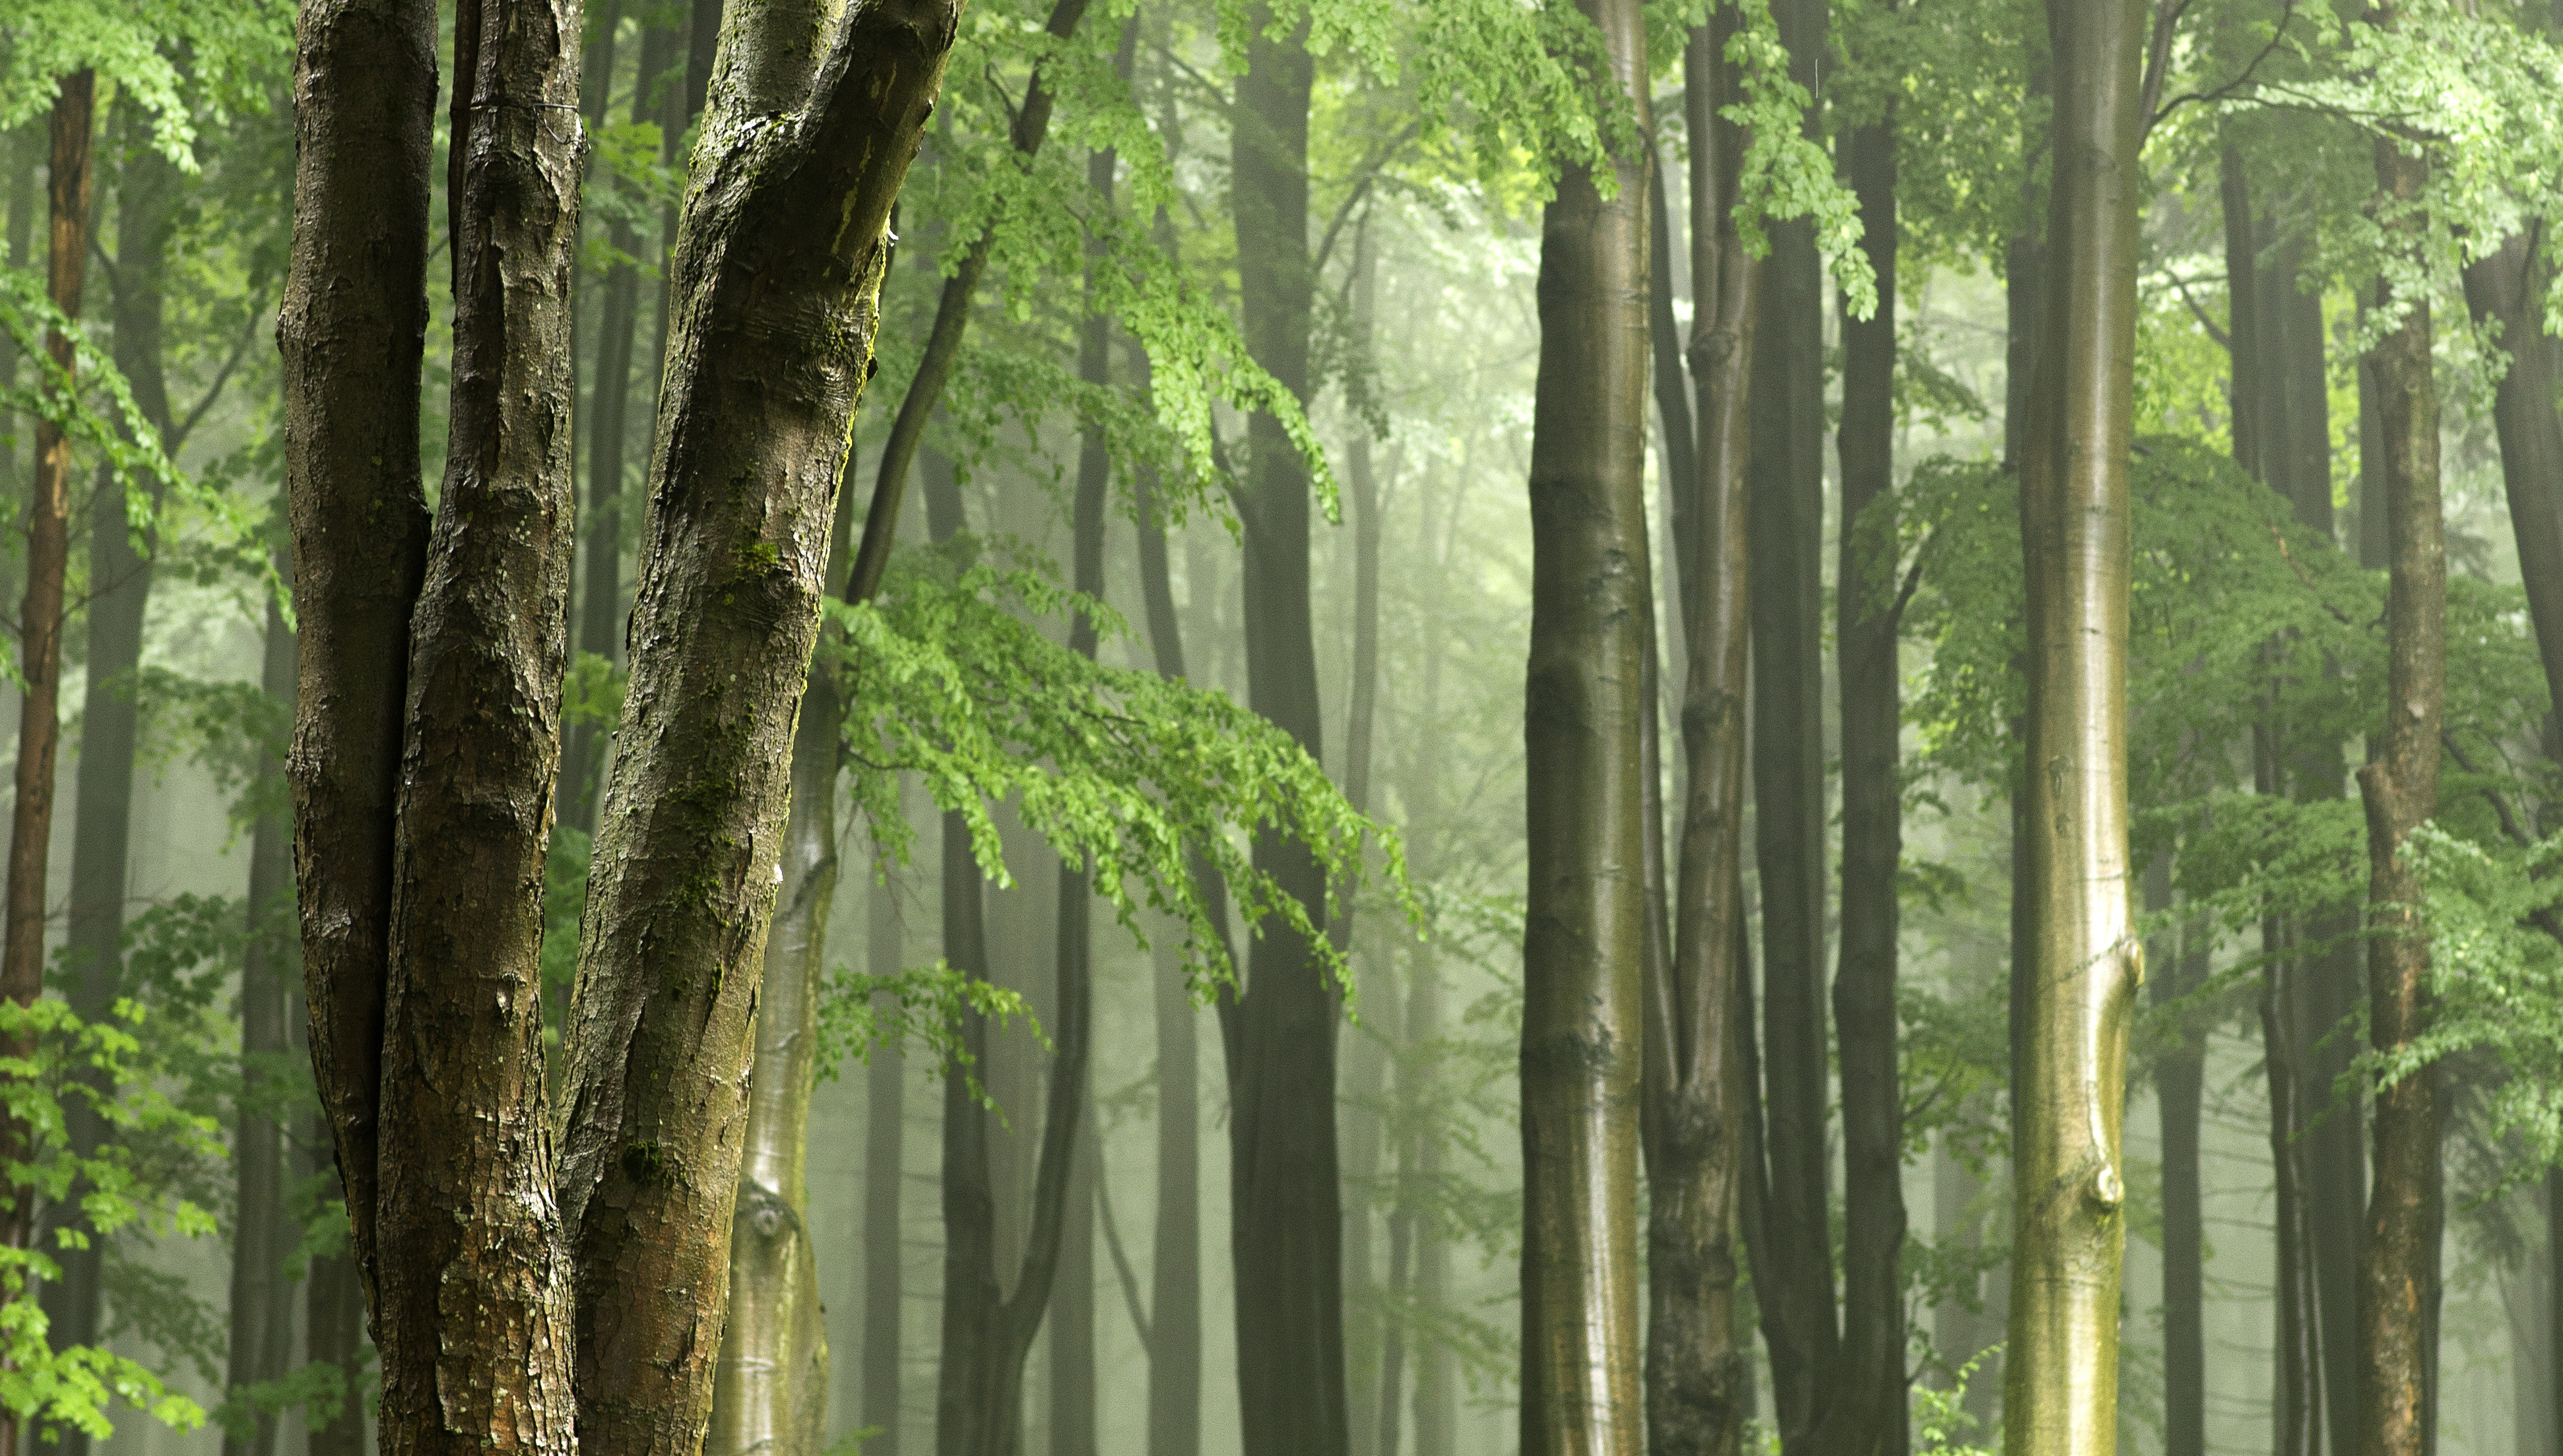 Panoramic View Of Trees In Forest 256655 on Color Learn Rain